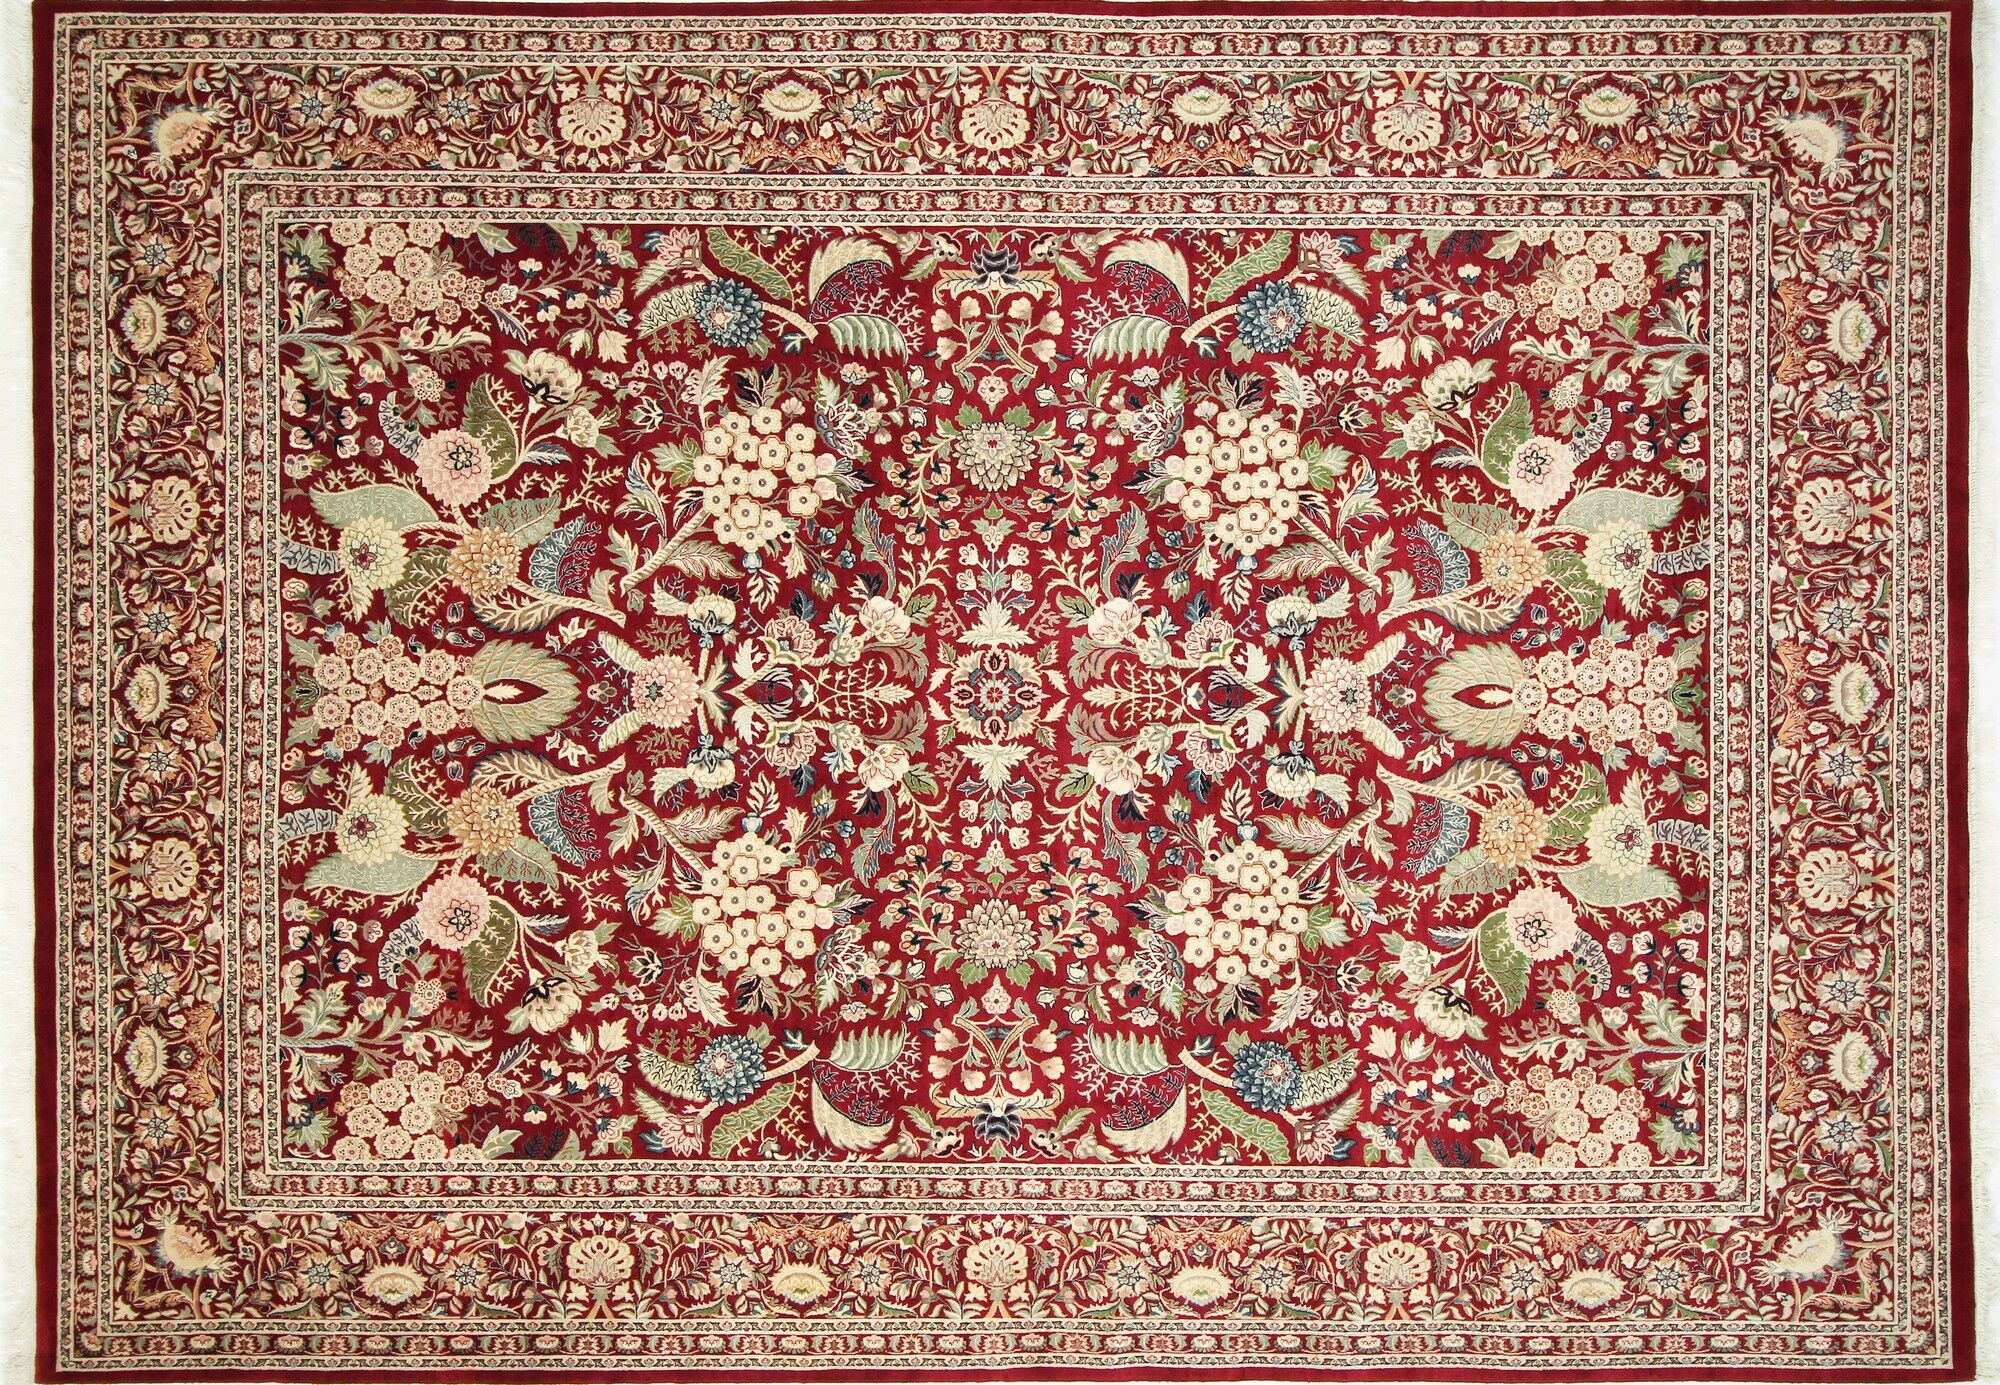 Pak-Persian Rovena Hand Knotted Wool Red Area Rug Rug Size: Rectangle 9' x 12'5